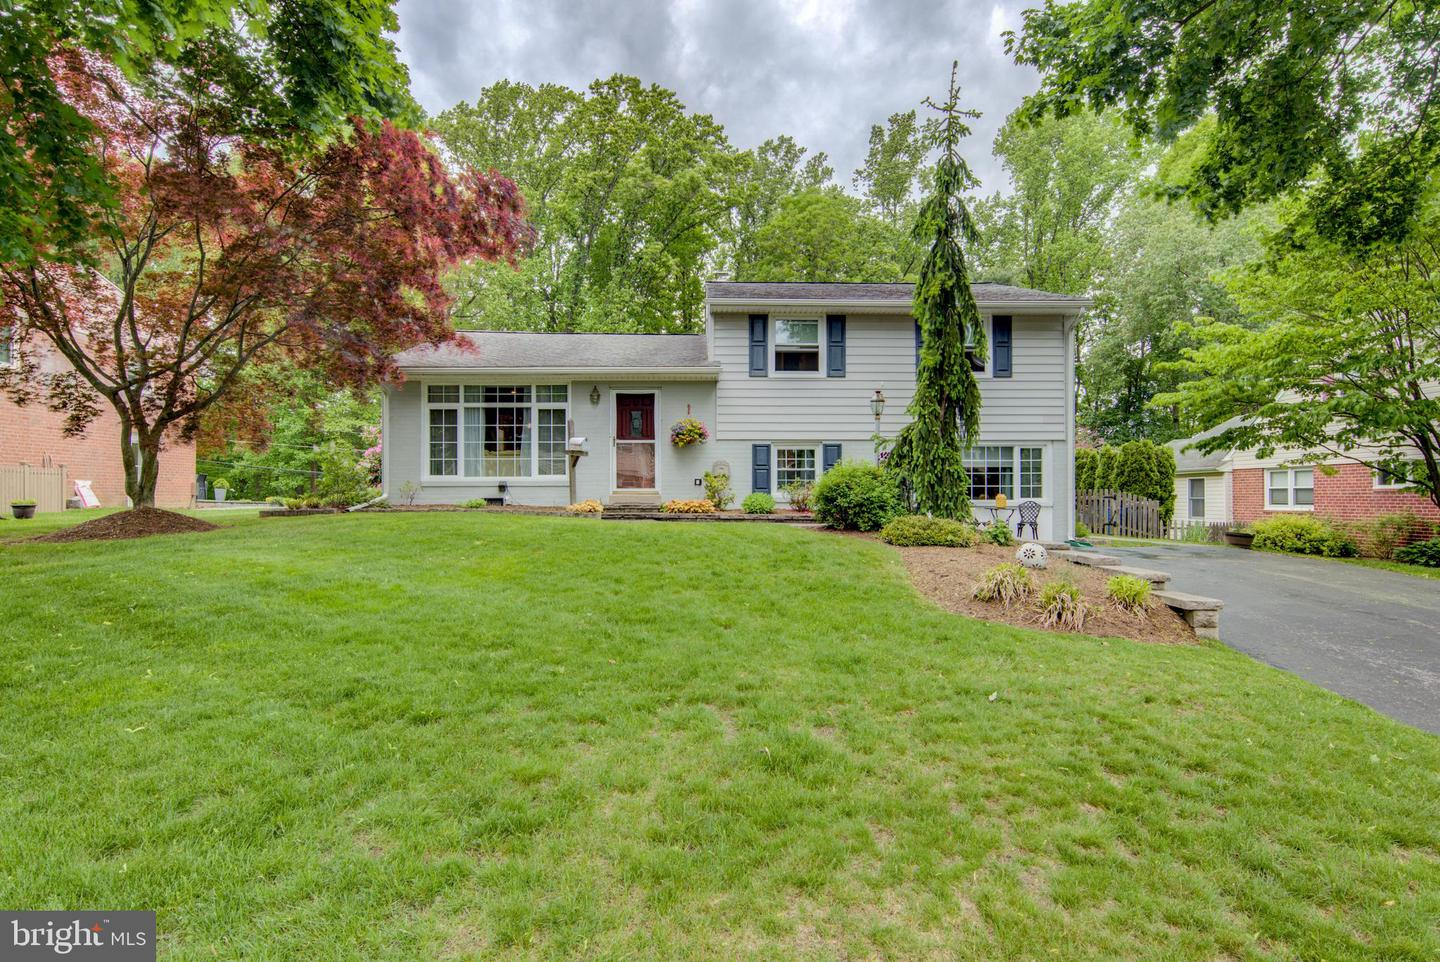 20 Linden Drive Broomall, PA 19008